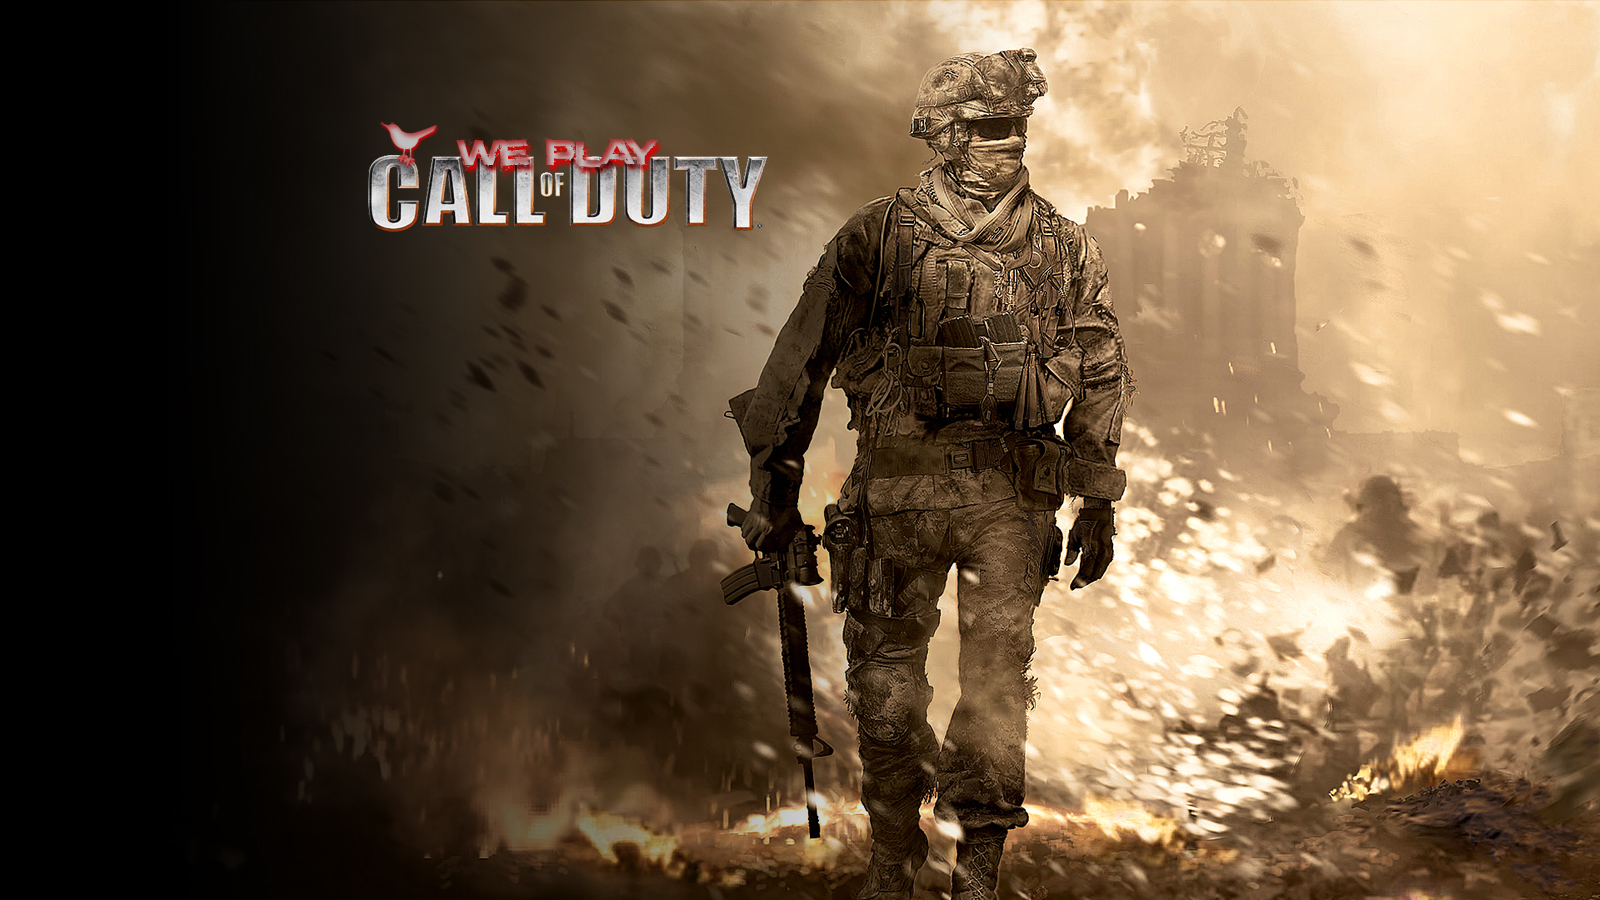 ps3 wallpapers mw2WePlayCoD MW2 CoD WaW and WePlayCoD 360PS3 Backgrounds XpdrneLx